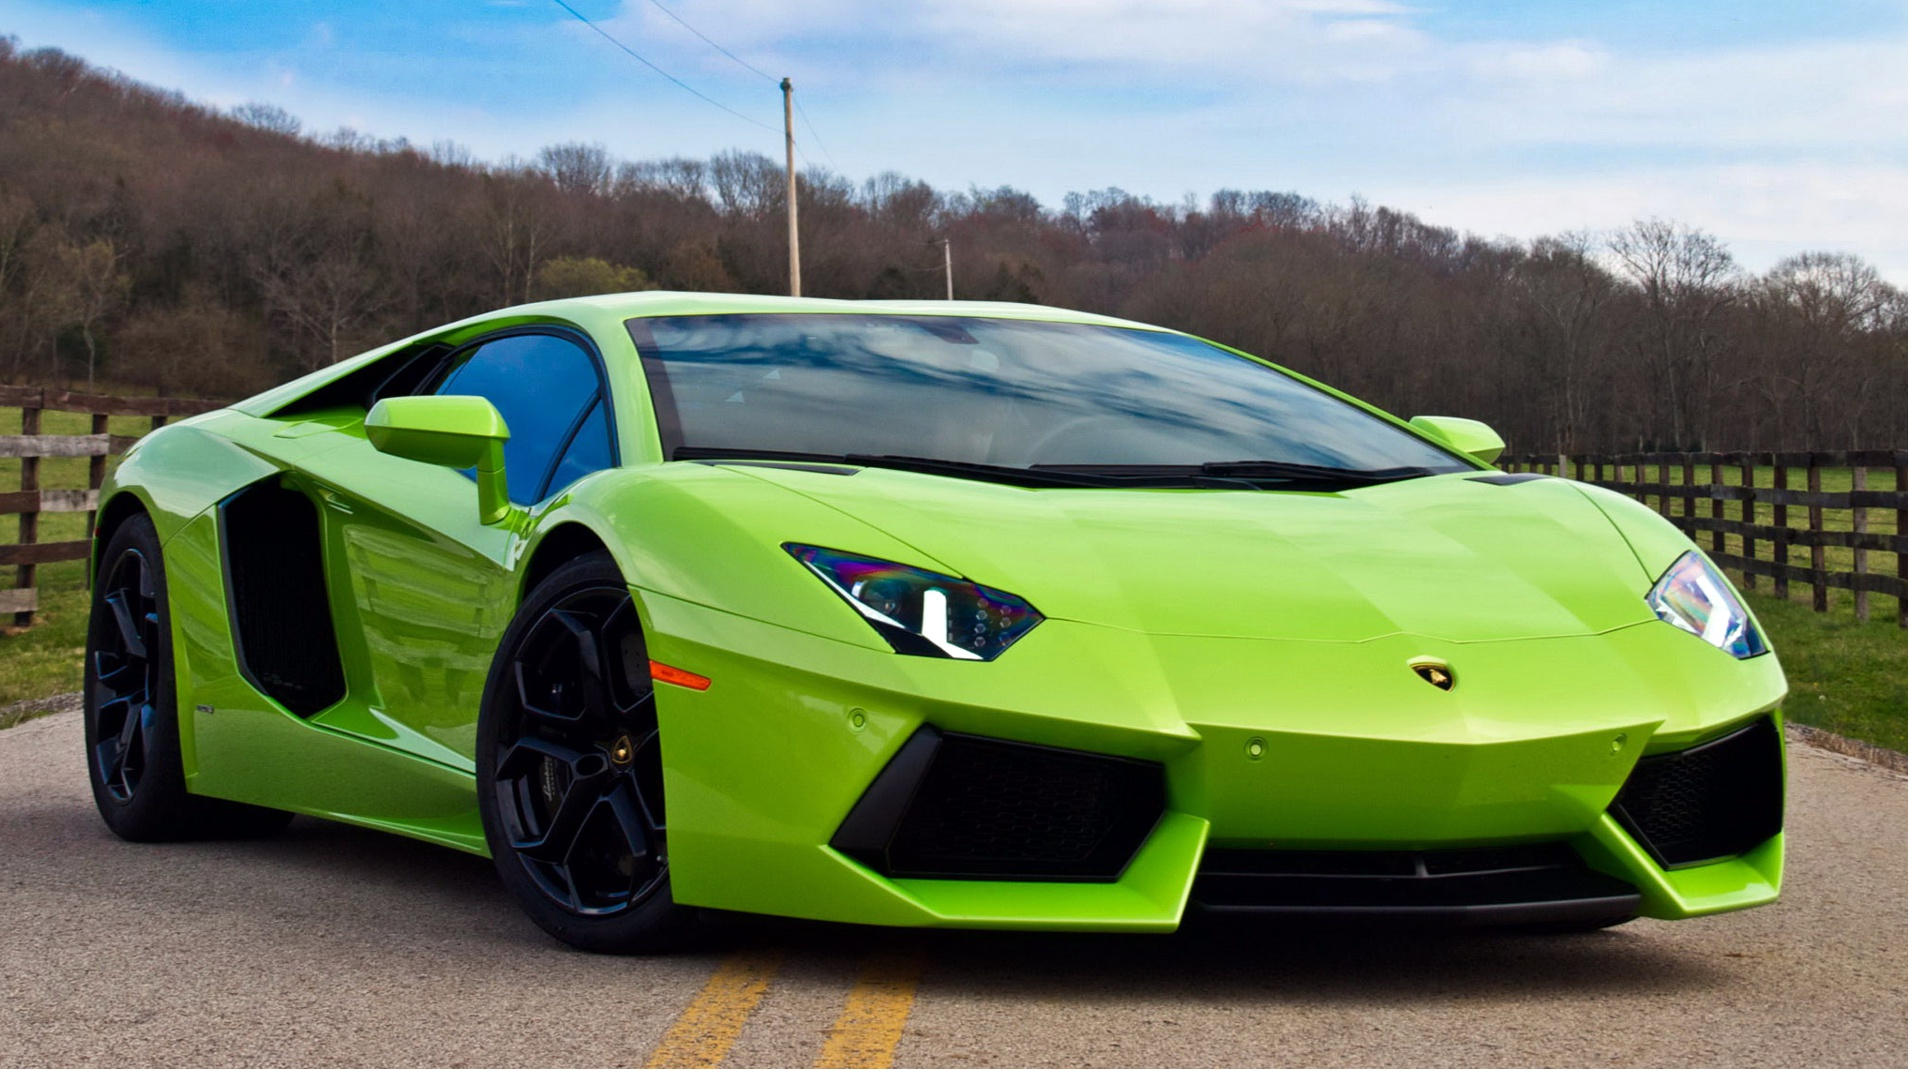 Green Lamborghini Test Drive 580.83 Kb